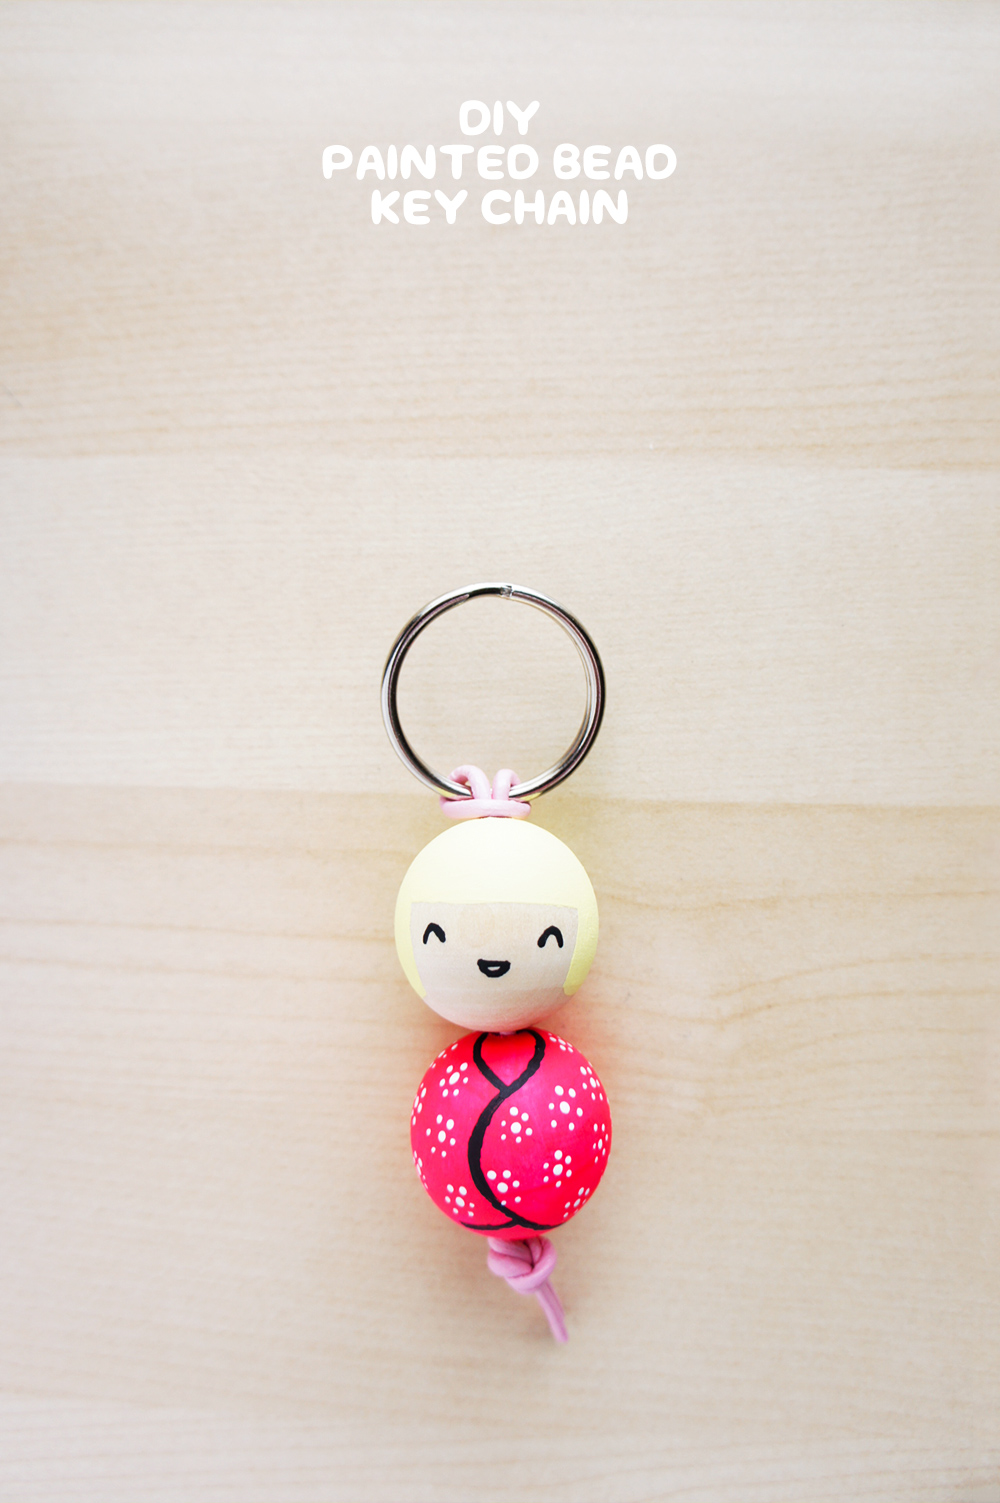 DIY-Painted-Bead-Key-Chaing-Hero